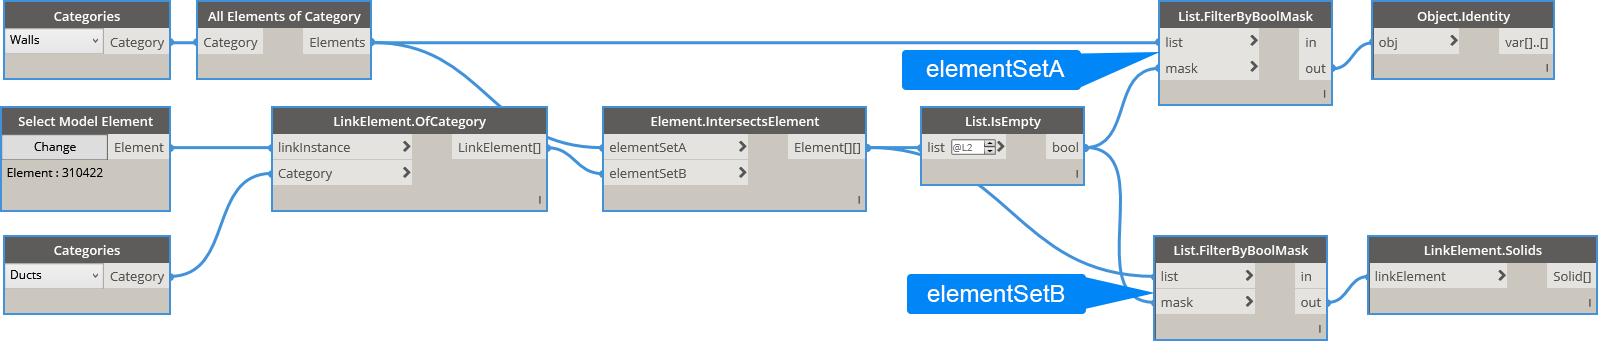 Element.IntersectsElement Clean List Workflow Dereferencin non-pointer BimorphNodes v2.2